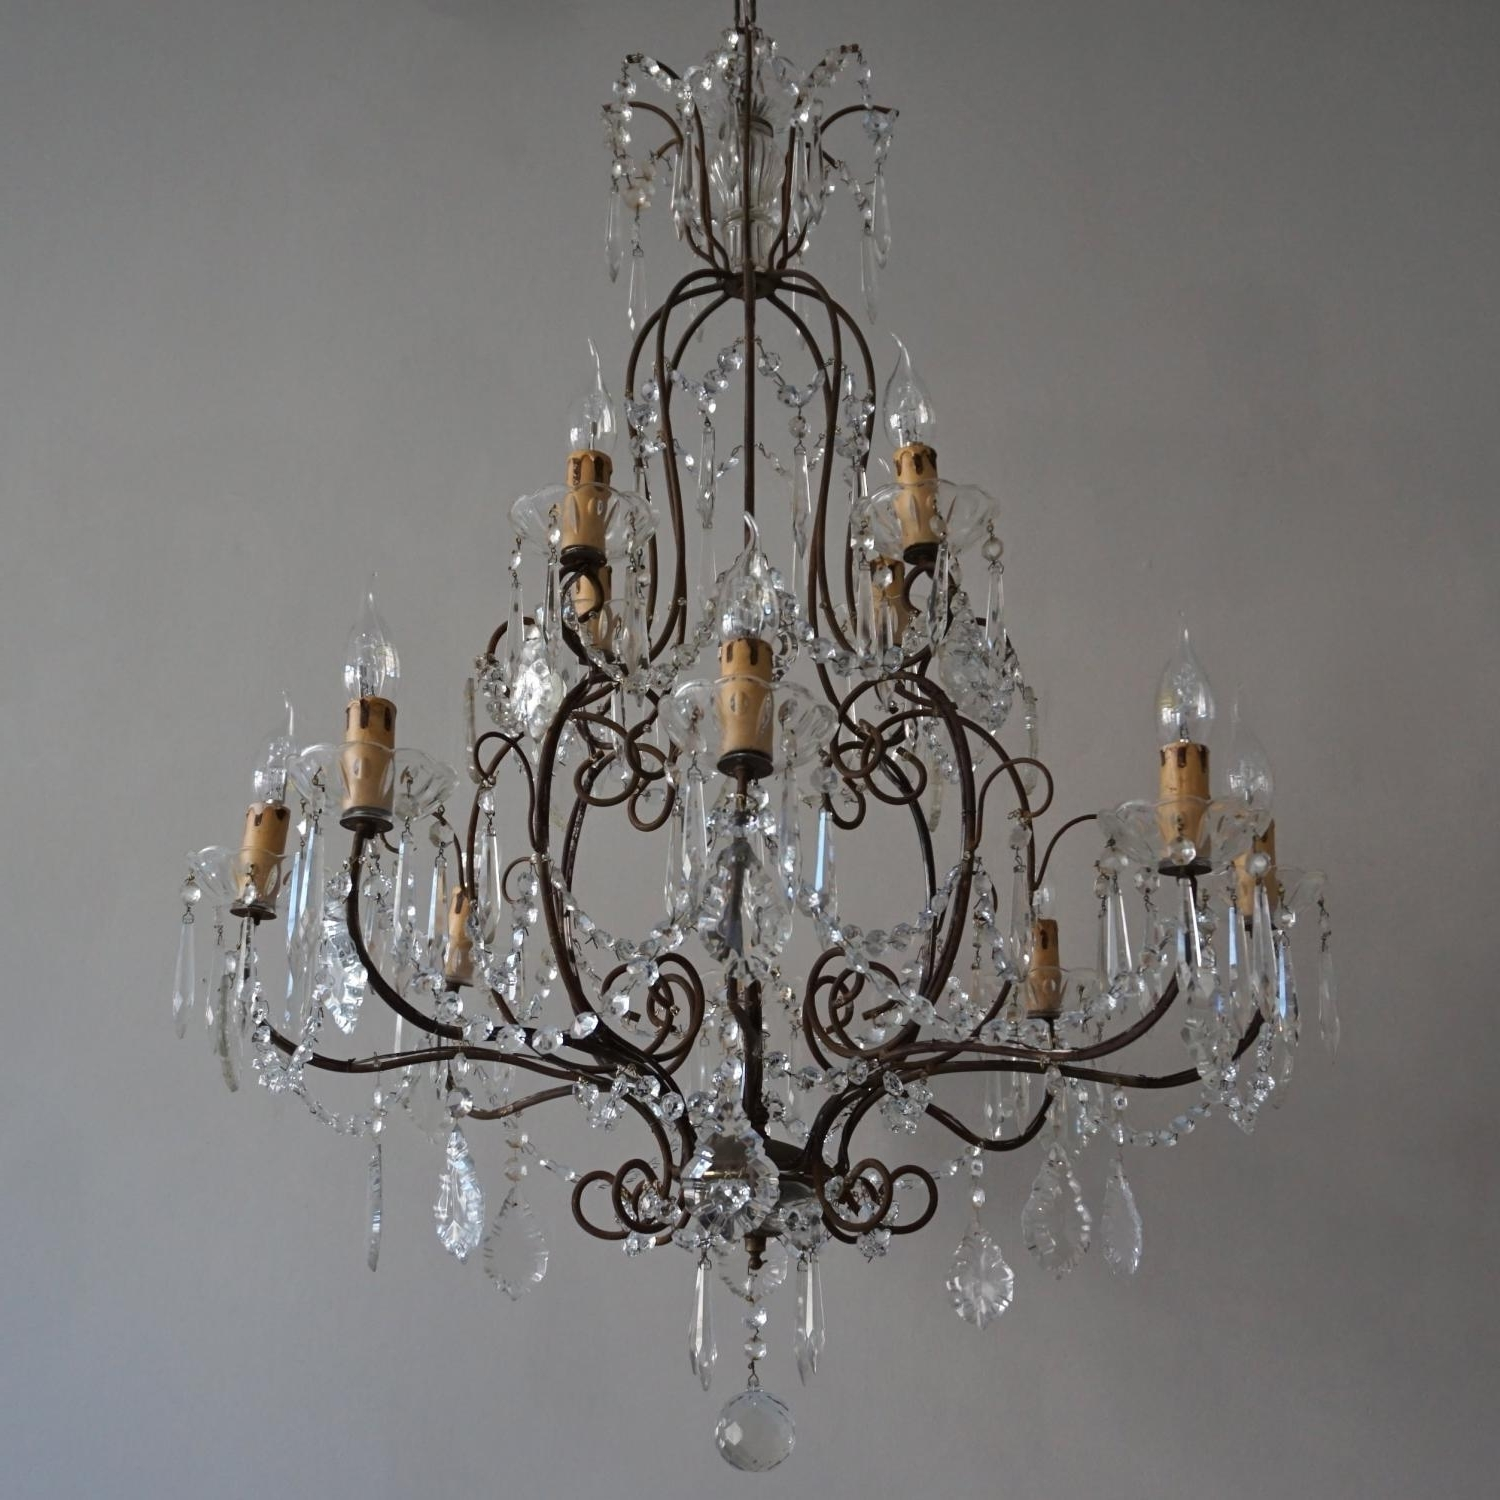 Magnificent Vintage 1930's Italian Chandelier In Lighting Inside Popular Vintage Italian Chandelier (View 5 of 15)